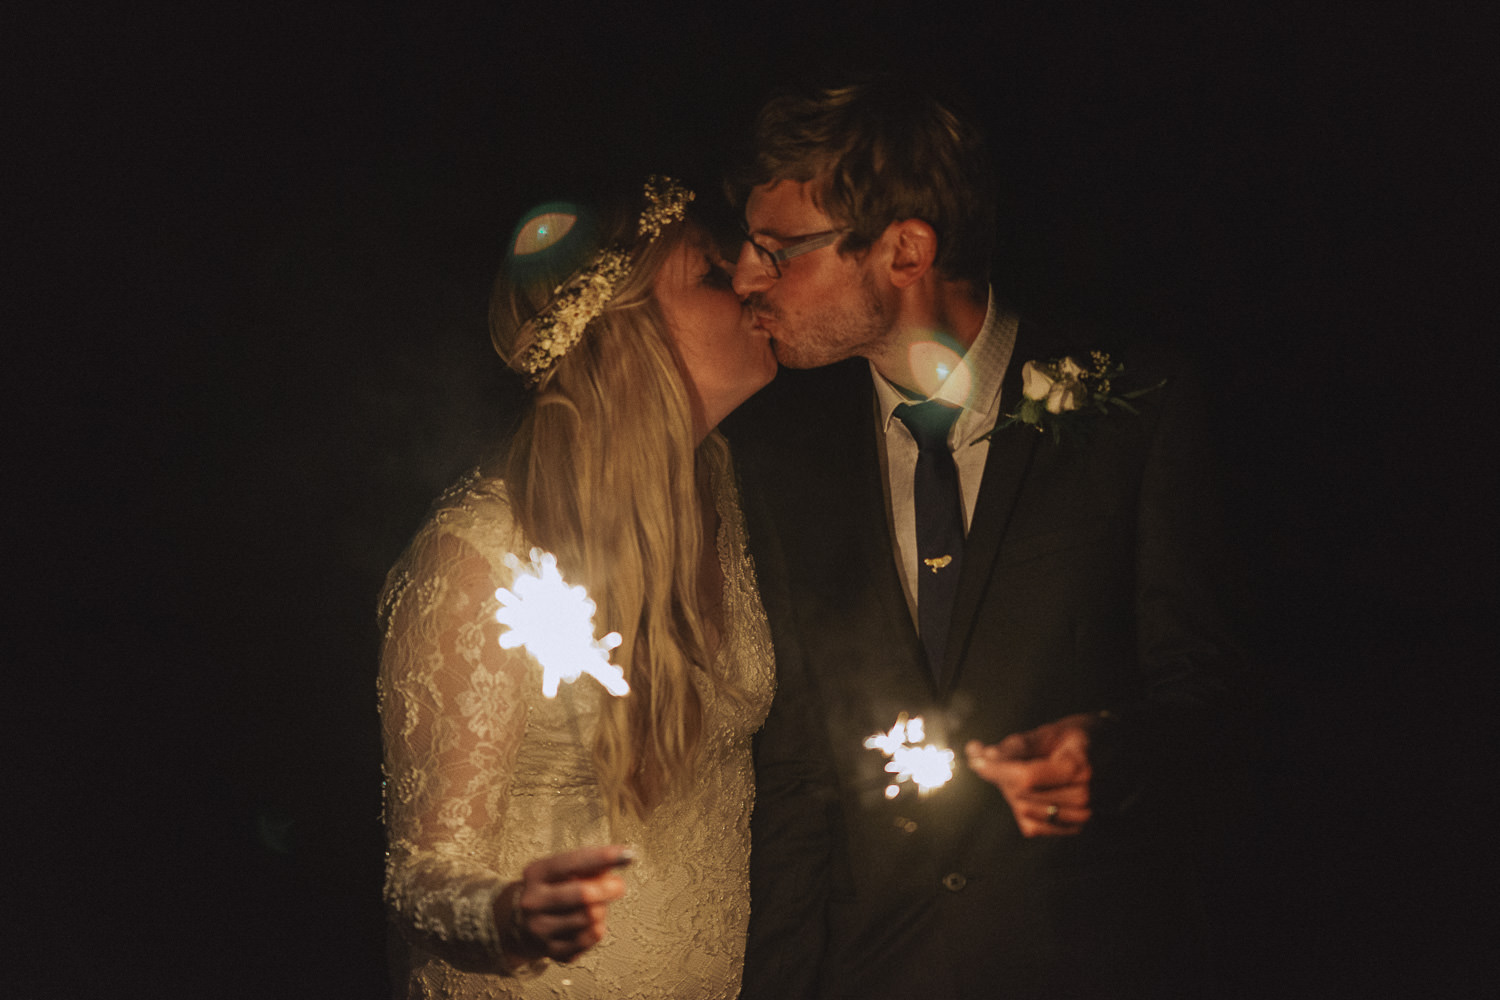 Sparkler photo at a wedding